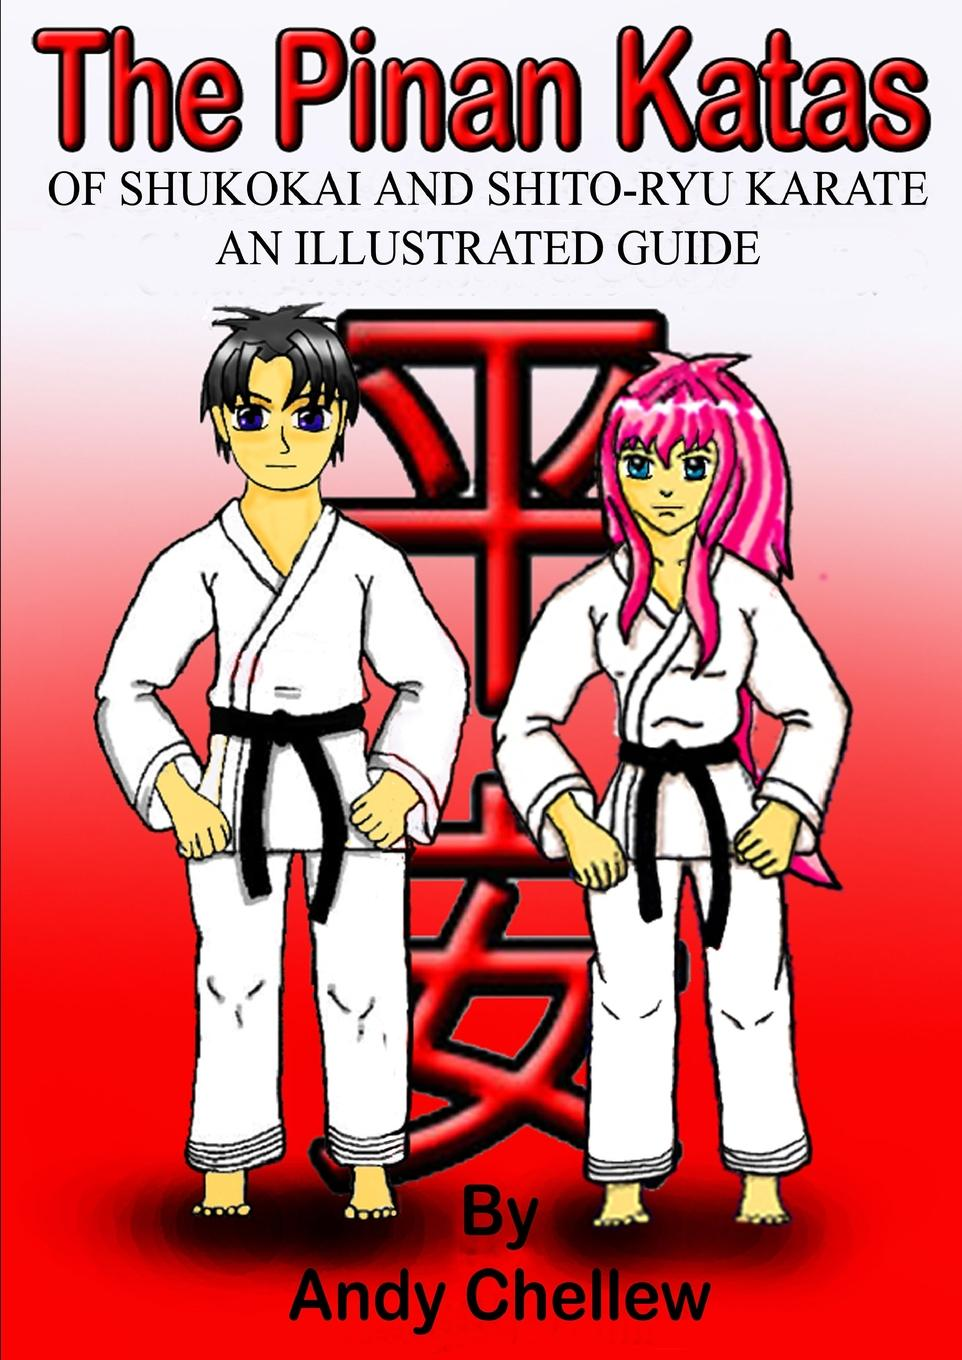 Andy Chellew The Pinan Katas Of Shukokai and Karate an Illustrated Guide jonathan bowling diagnostic dermoscopy the illustrated guide